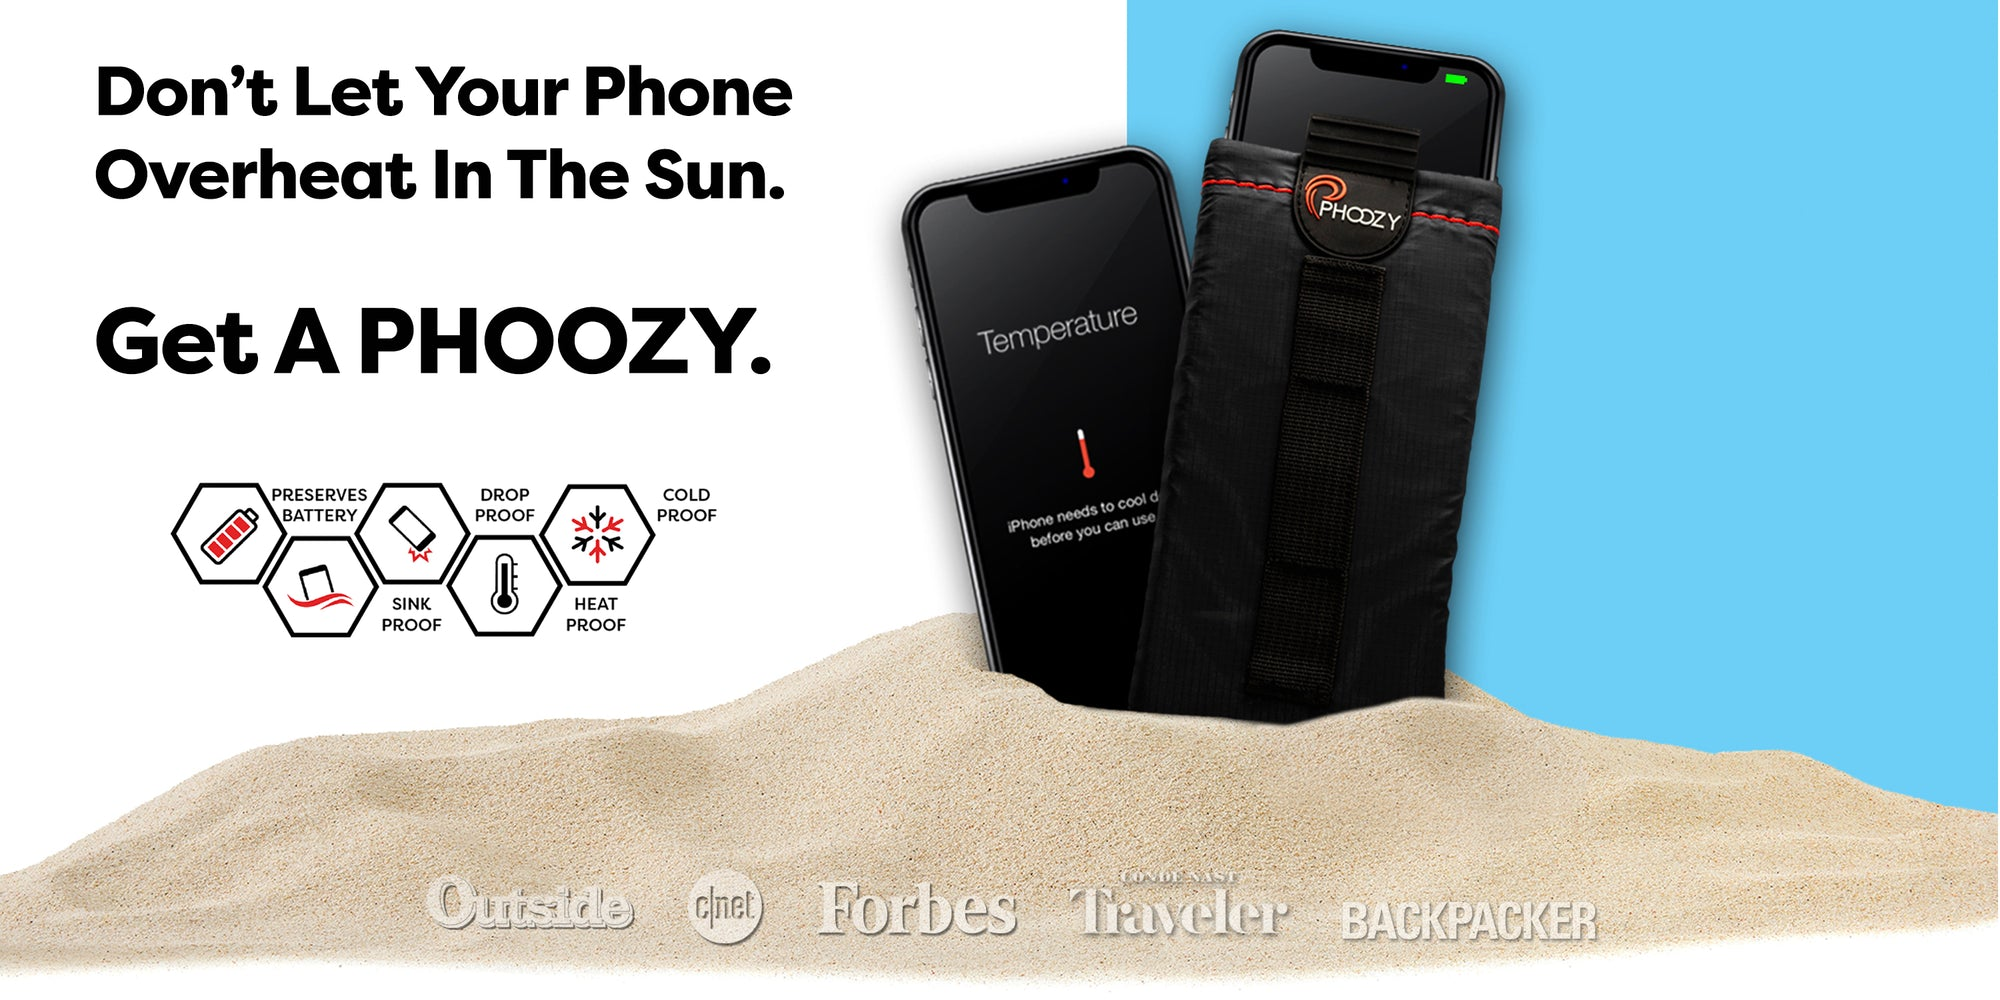 Don't let your phone overheat in the sun. Get a PHOOZY.  iPhone Overheated in sand.  iPhone working properly with full battery inside of PHOOZY XP3 Series Thermal Capsule